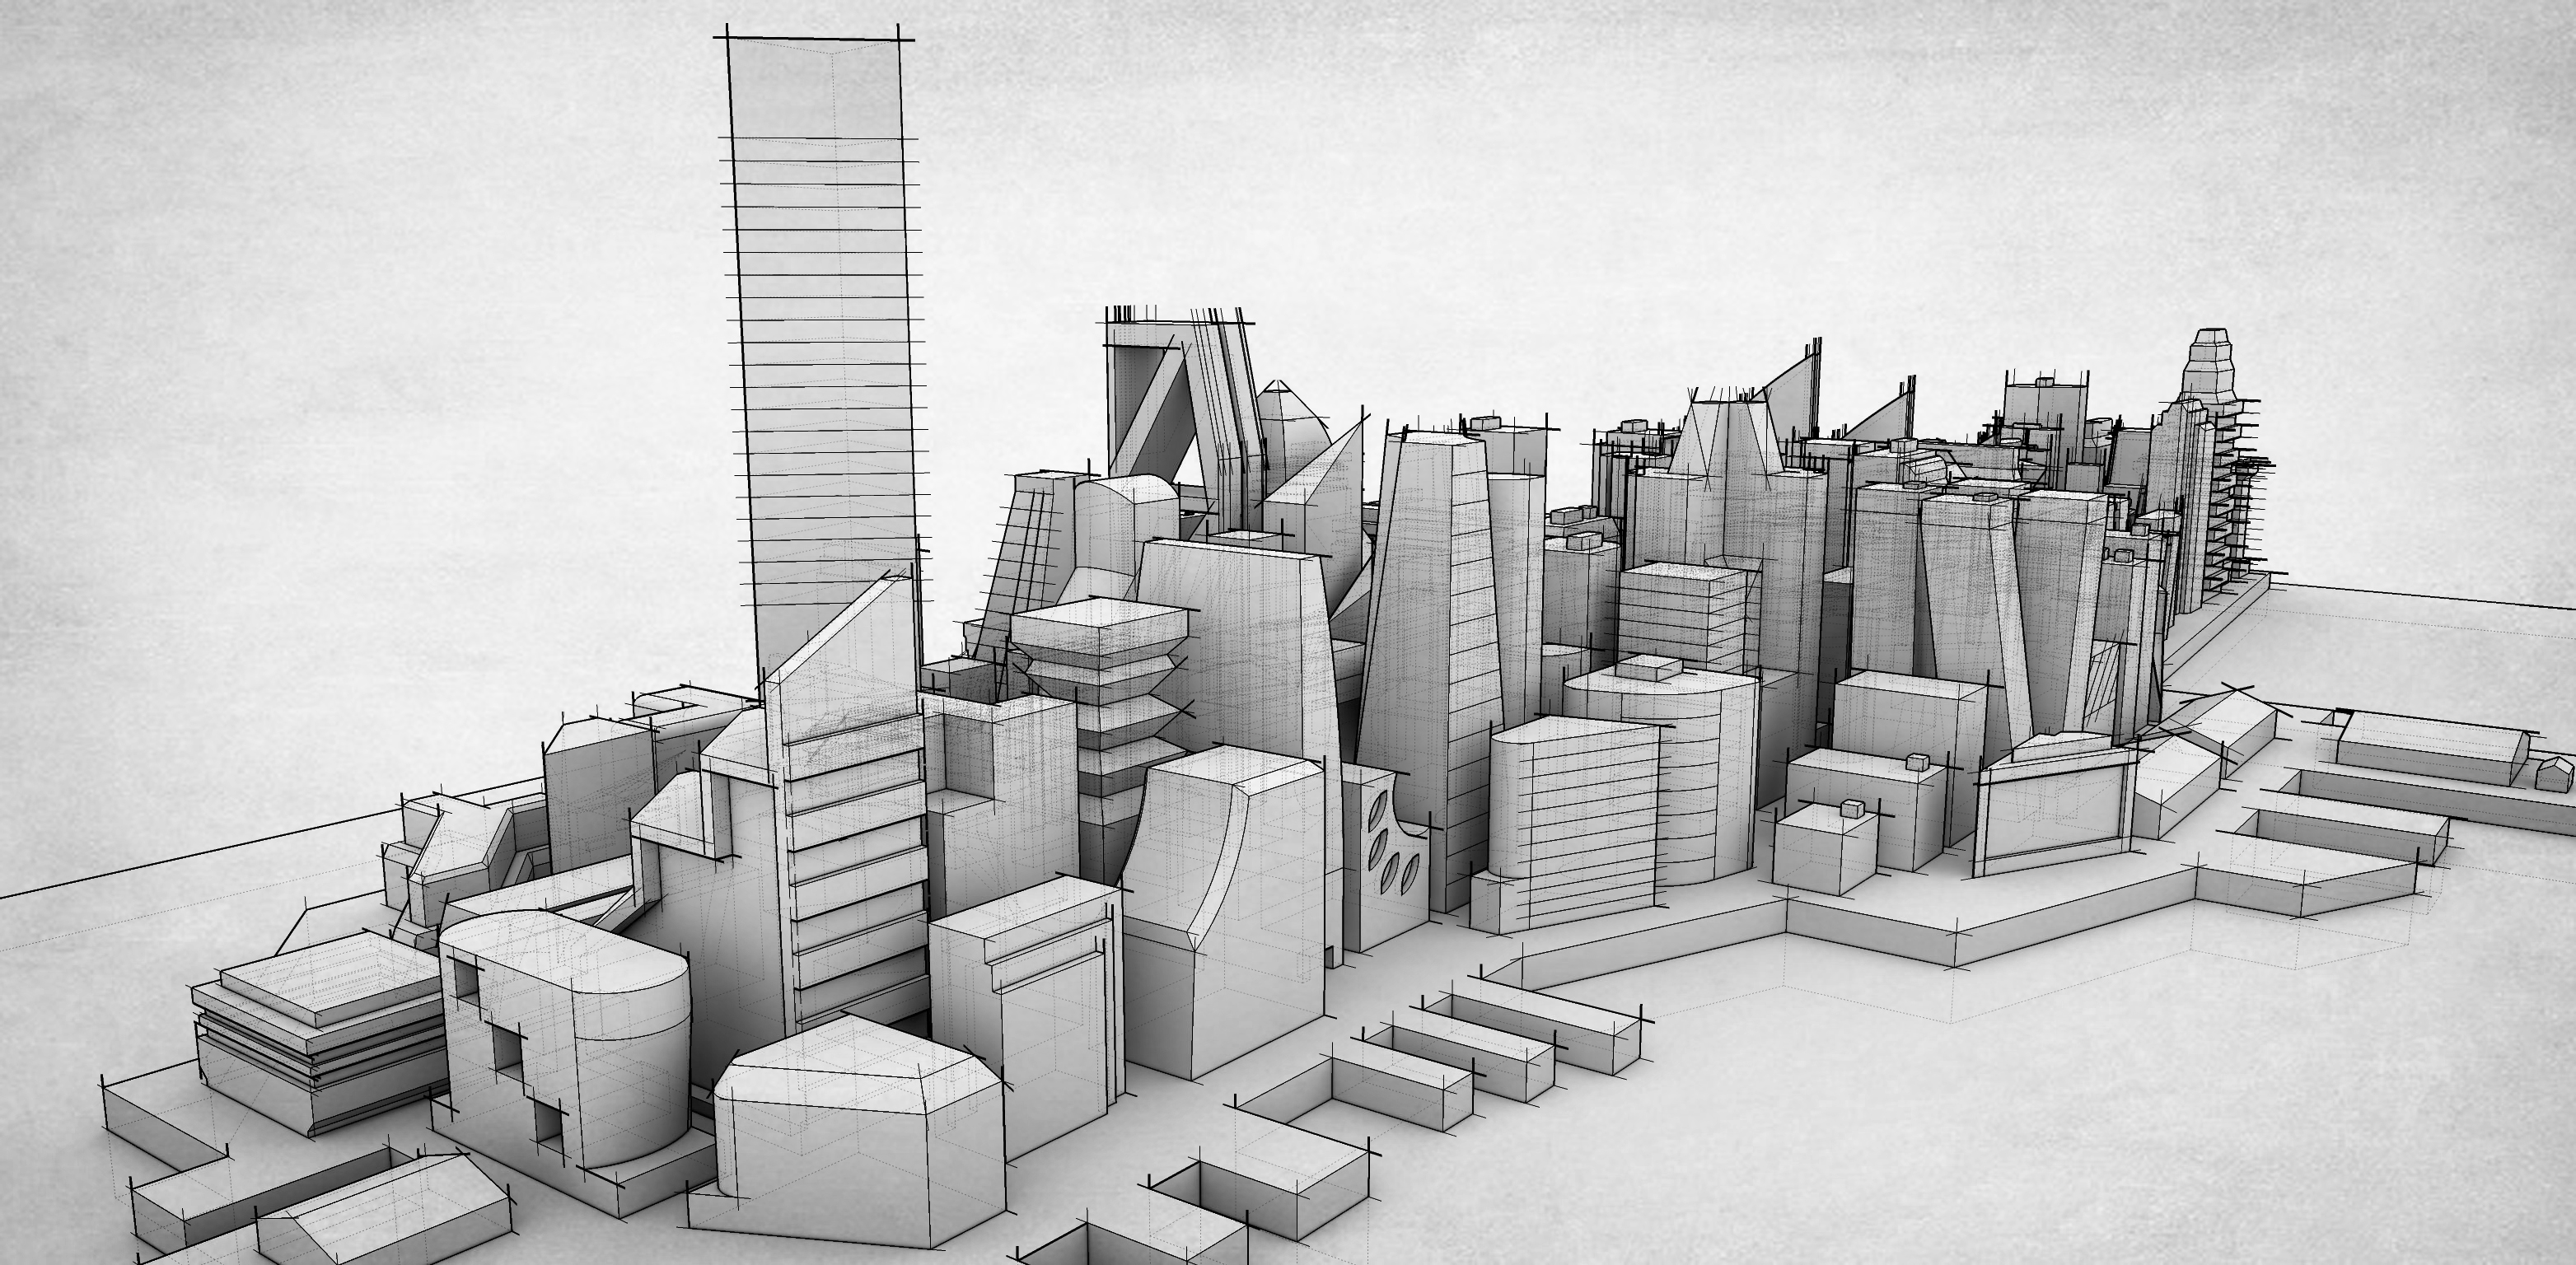 Mirrors Edge City in Sketchup